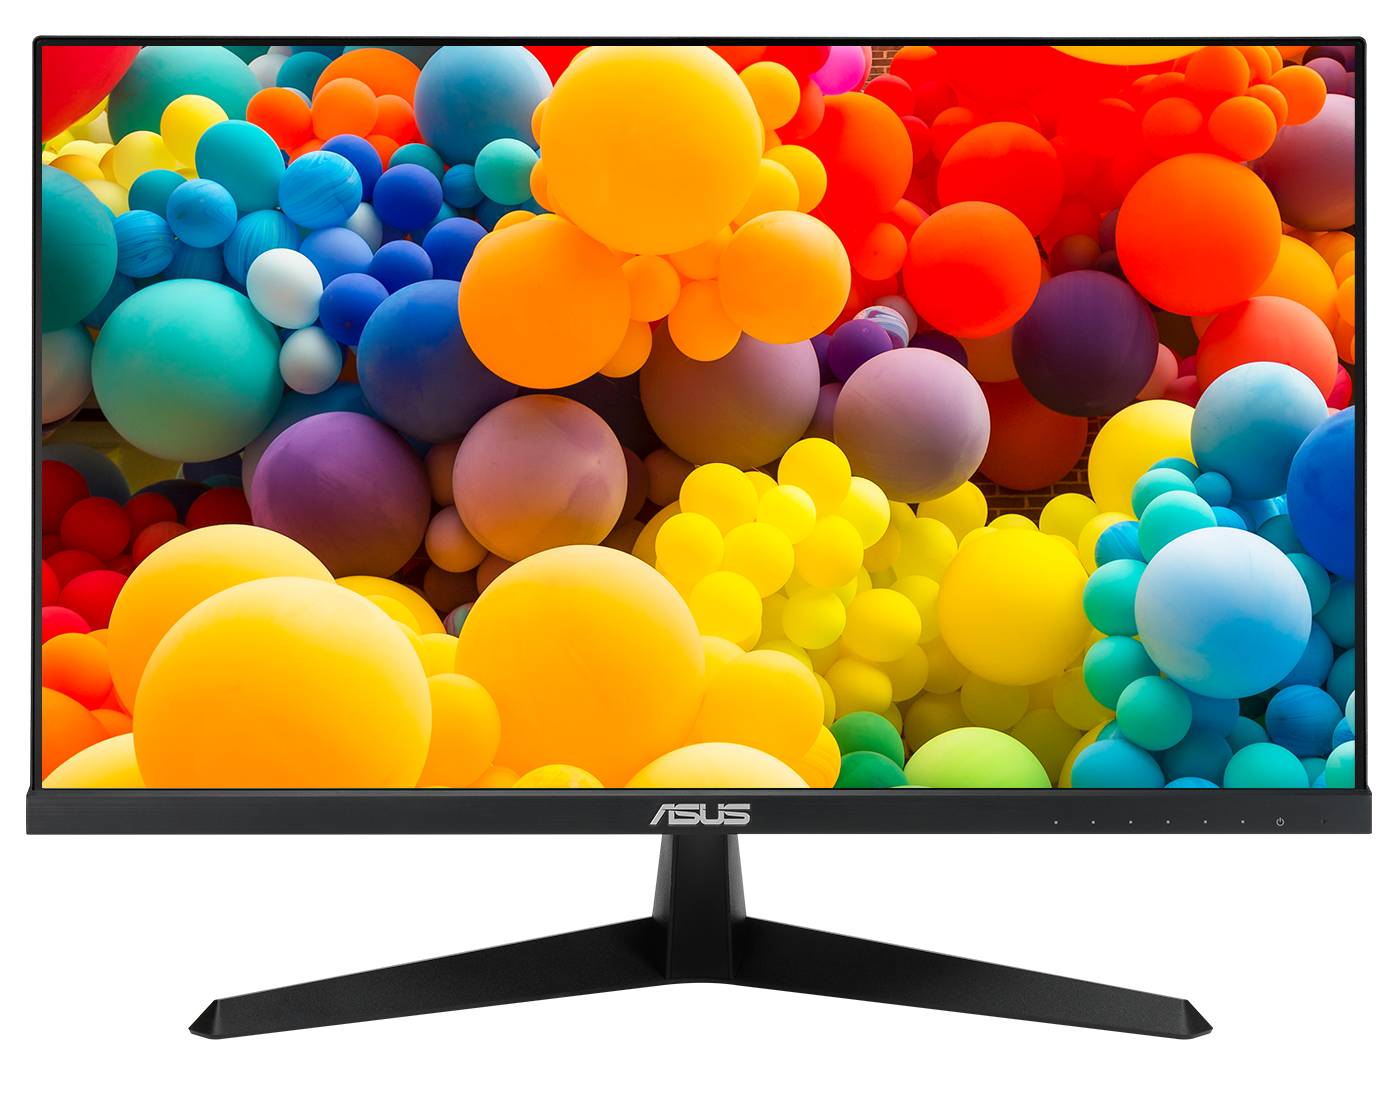 Amazing colors with IPS panel technology